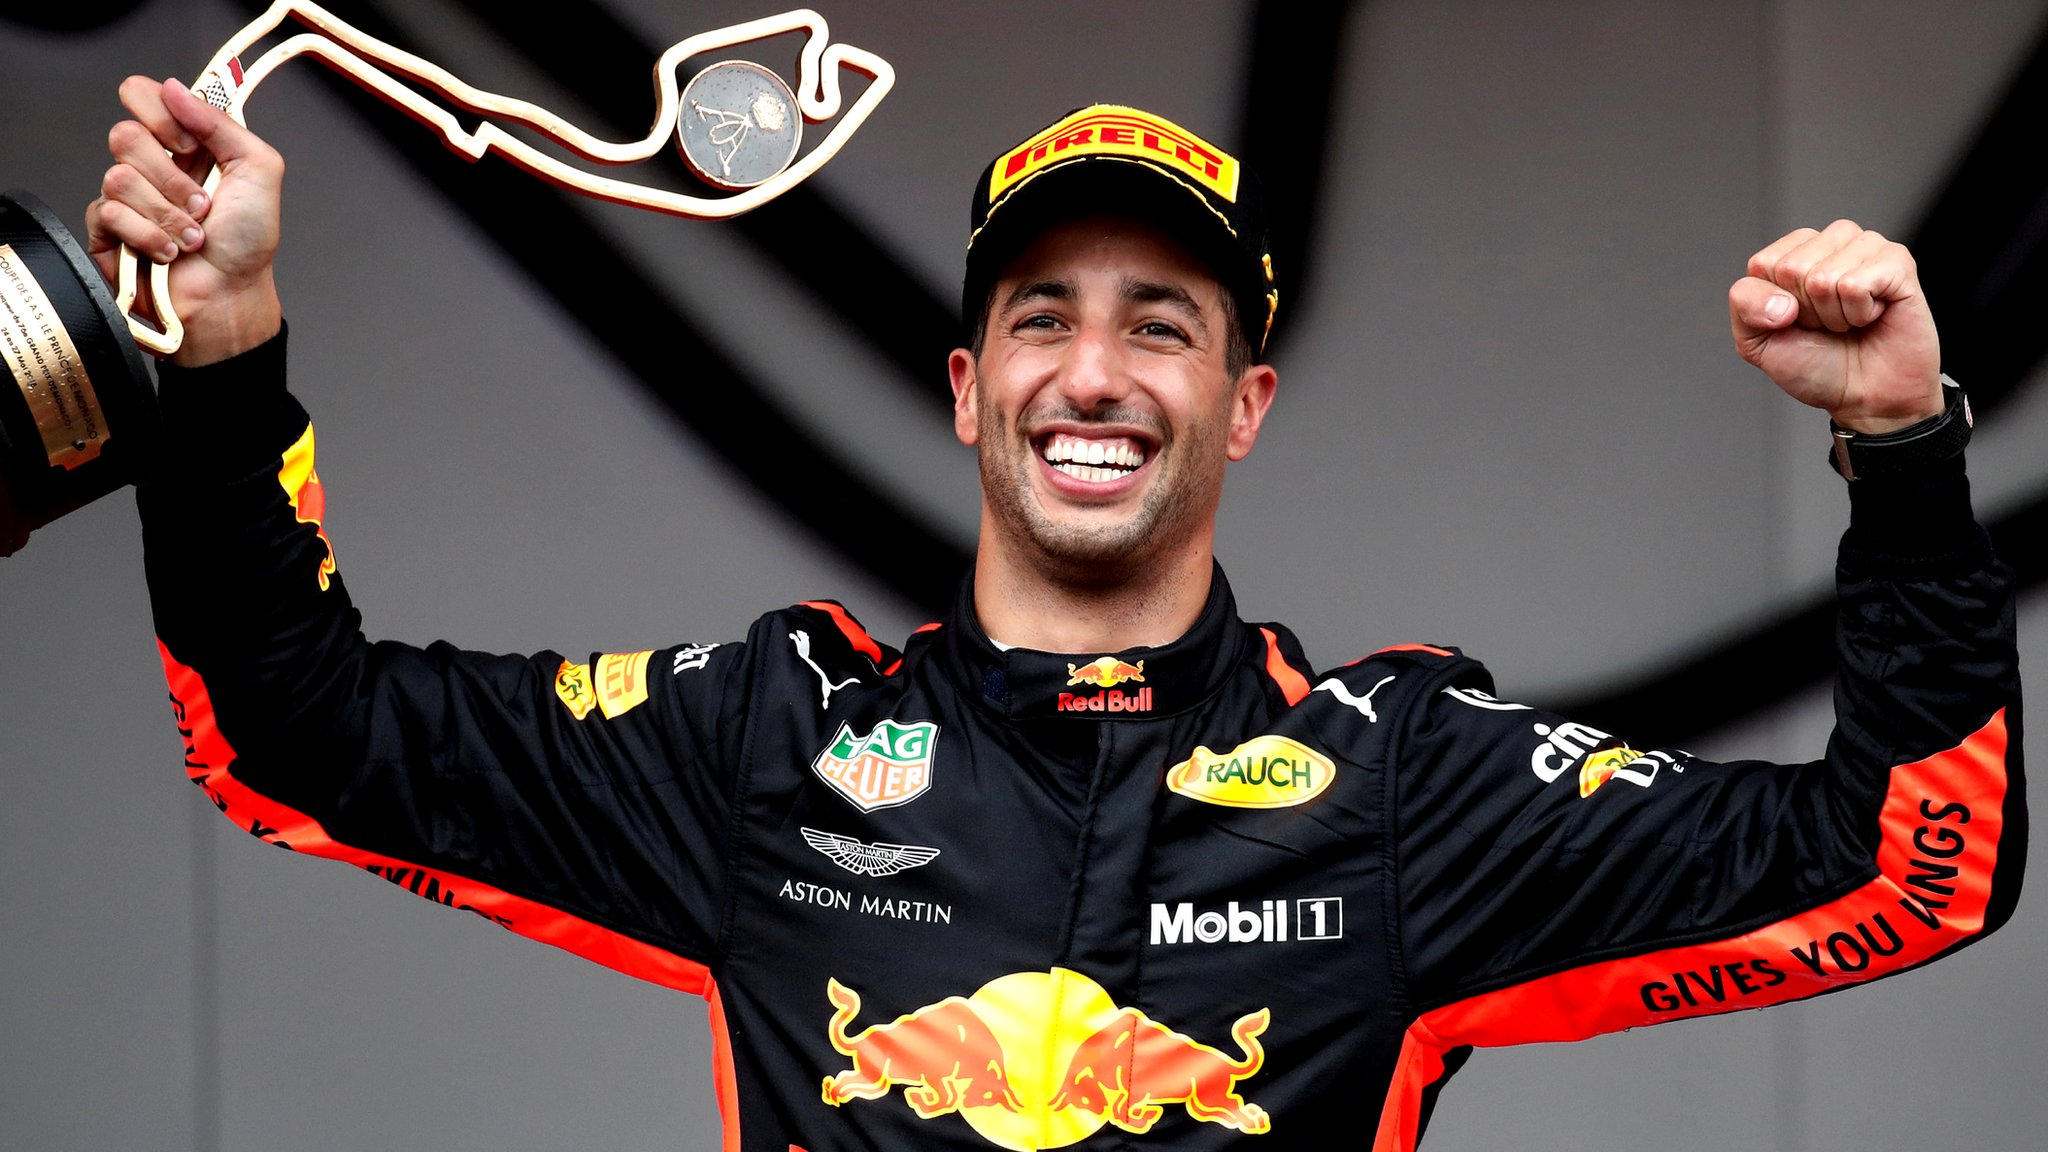 Monaco Grand Prix: Daniel Ricciardo fends off Sebastian Vettel for victory